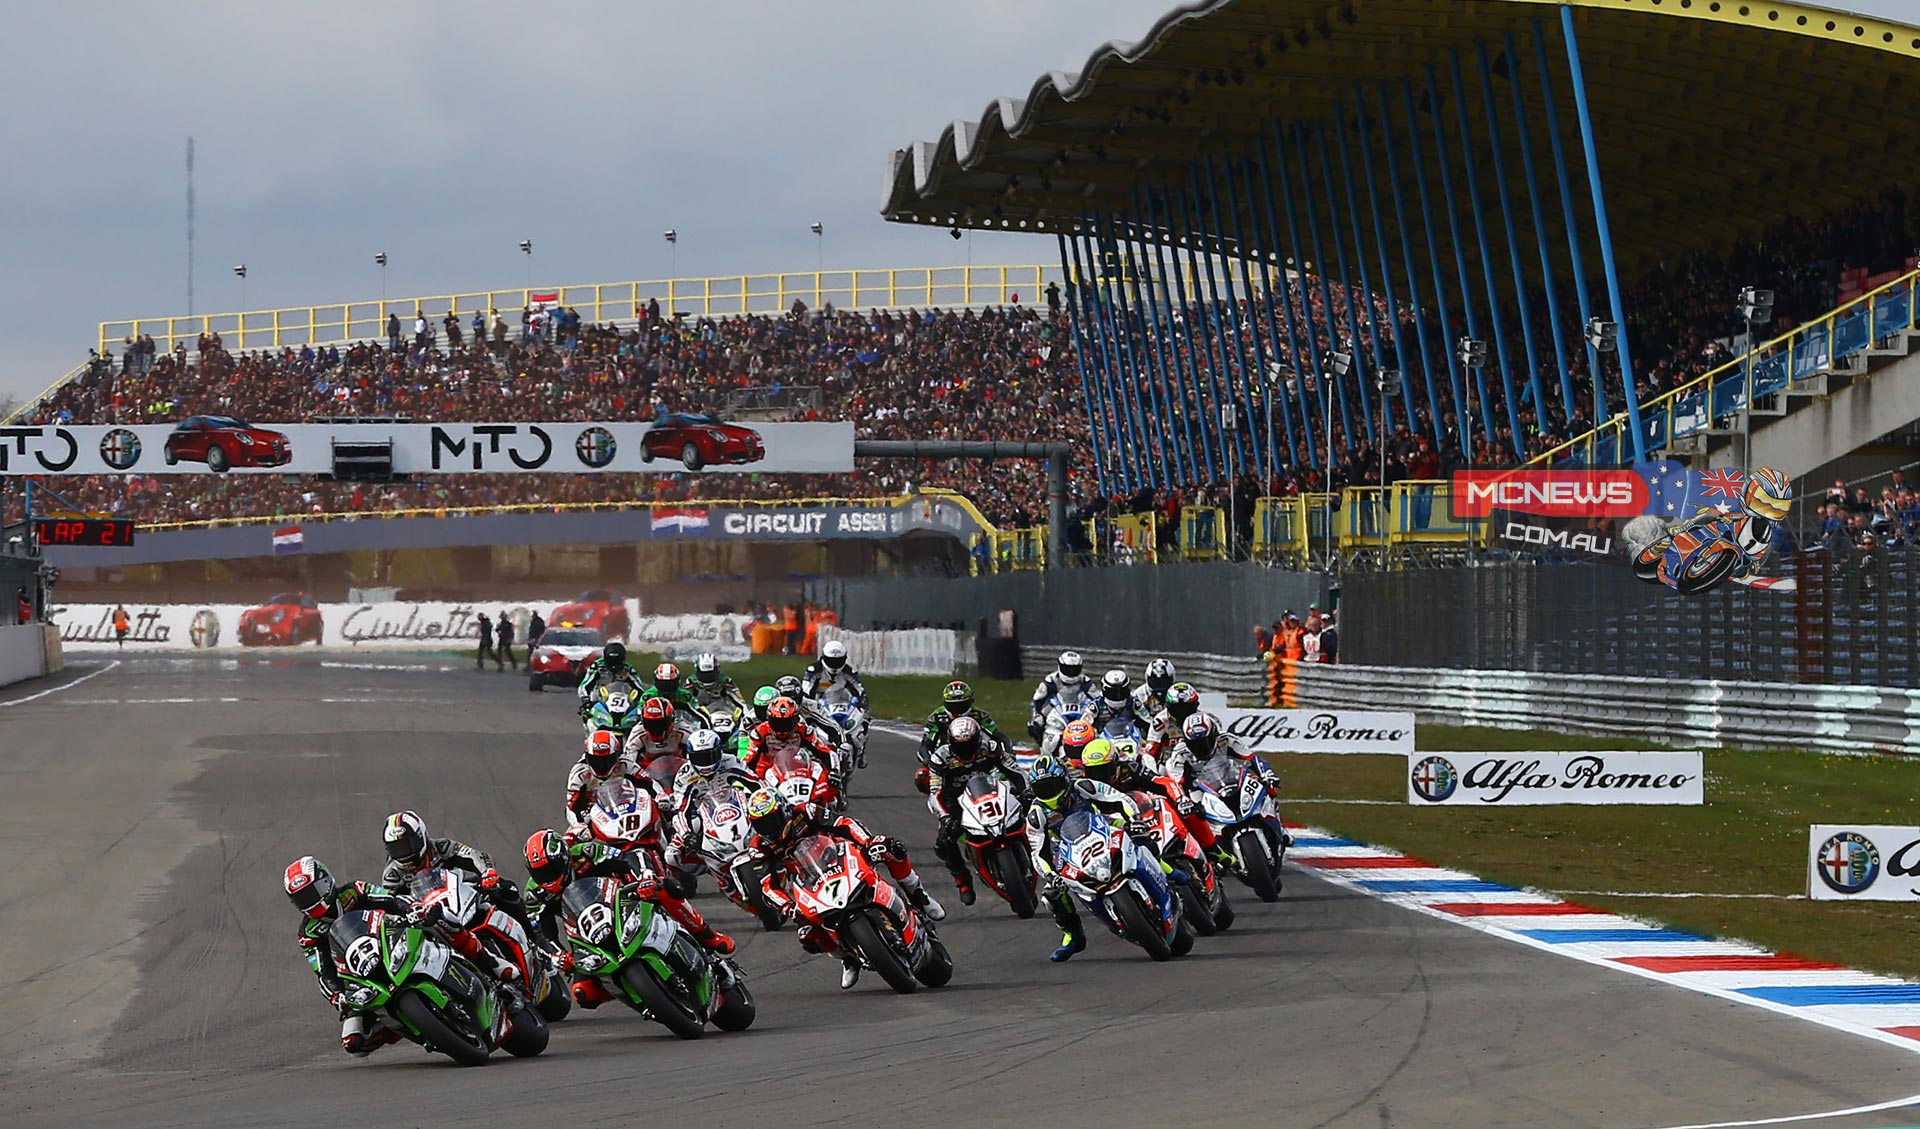 World Superbike Assen 2015 Race Start